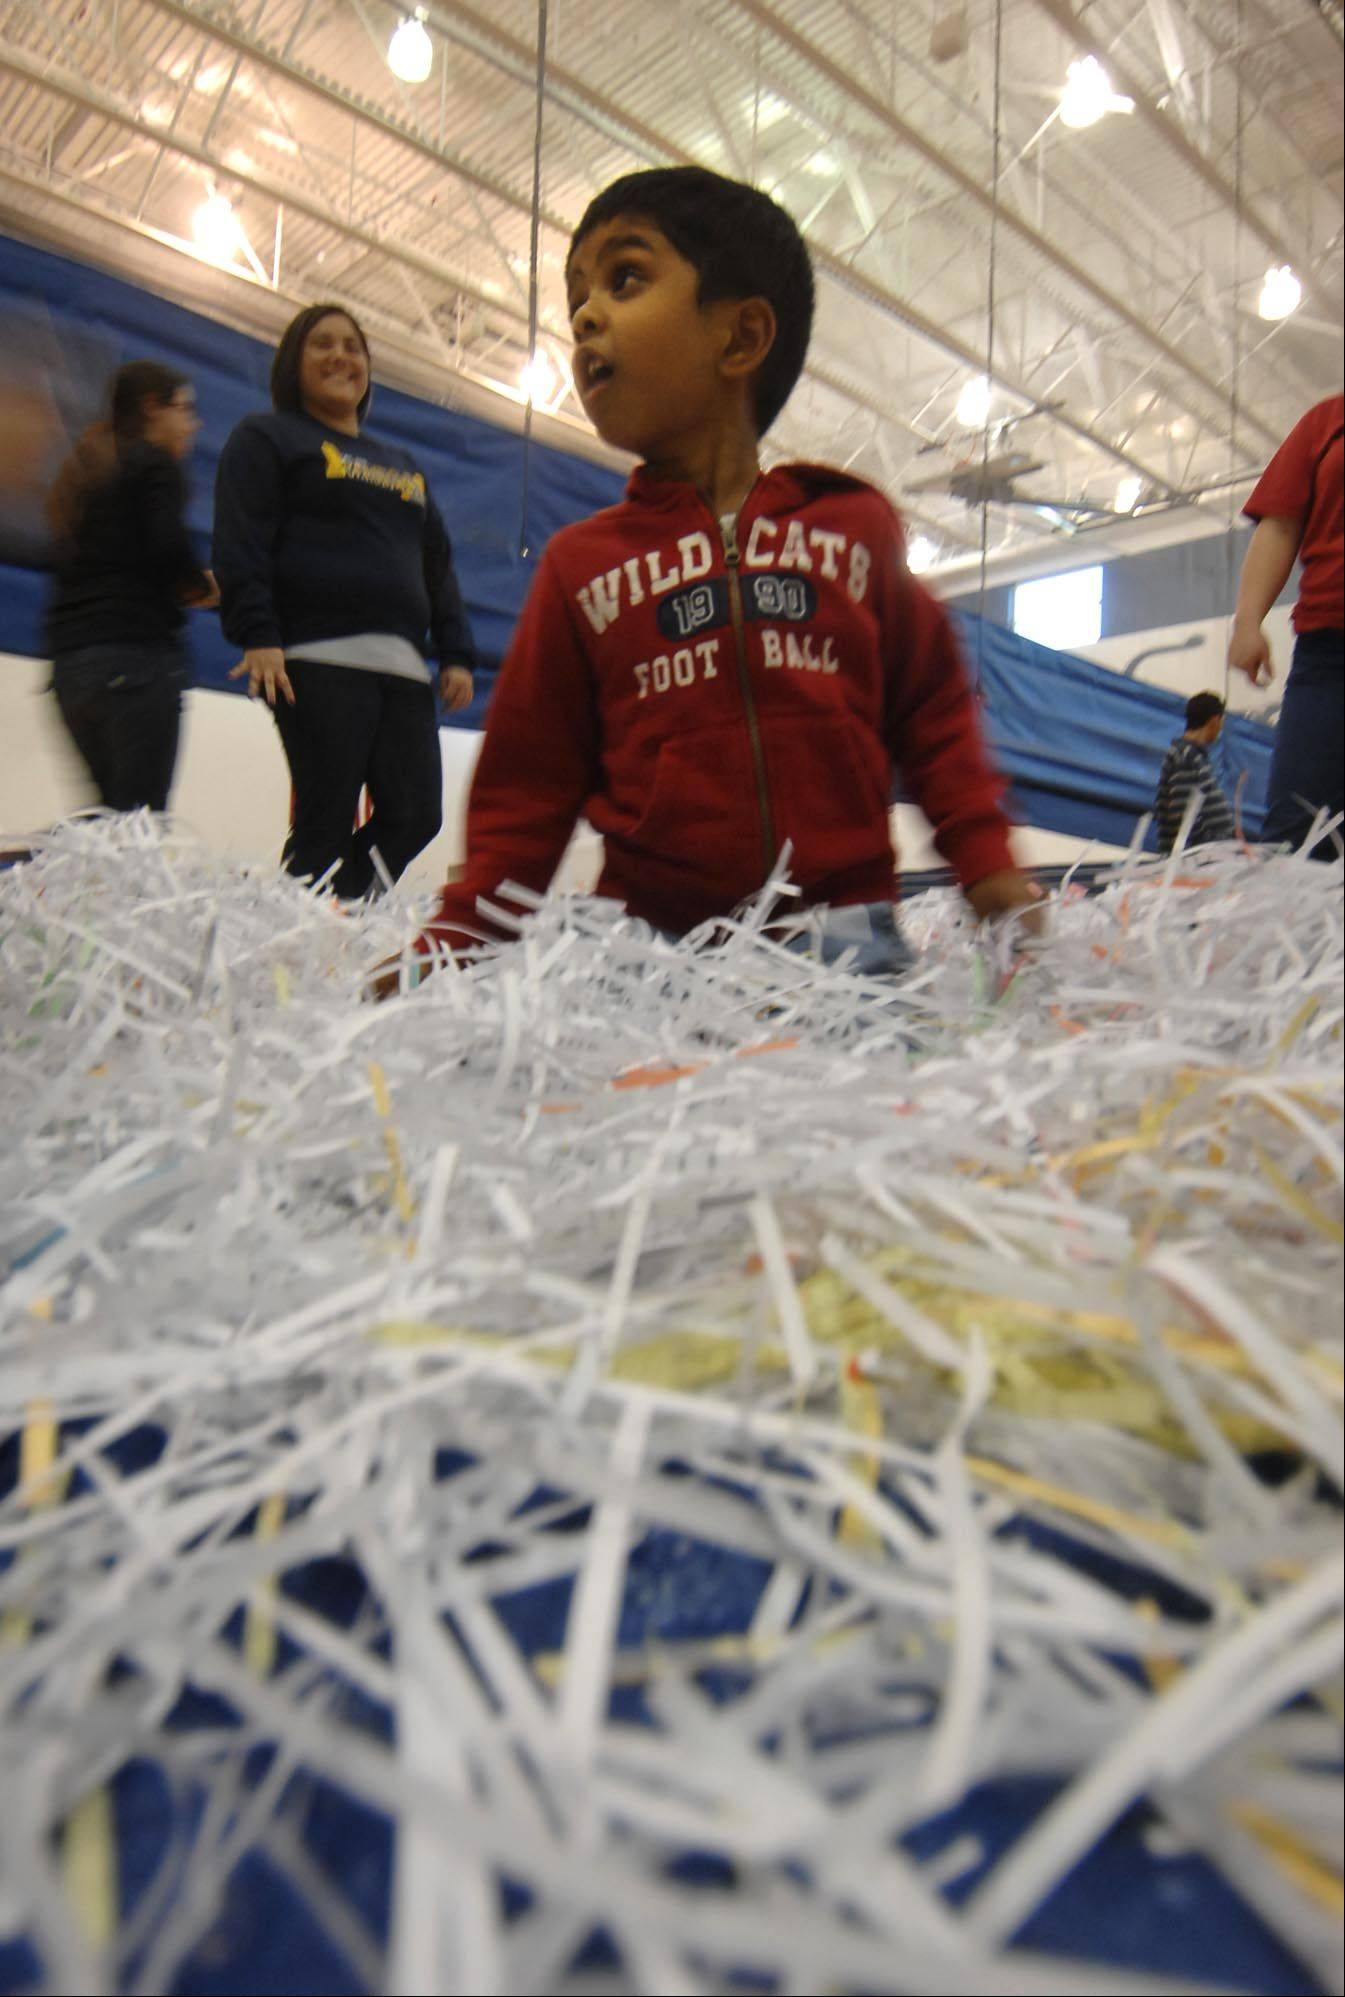 Sourya Palepu, 4, looks for candy and plastic eggs in shredded paper Thursday at an Adaptive Spring Holiday Egg Hunt at Kenyon Woods Middle School in South Elgin. The egg hunt is designed to meet the needs of children of all abilities and promotes hand-eye coordination. The South Elgin Parks and Recreation Department sponsors the annual event. He is from Aurora.